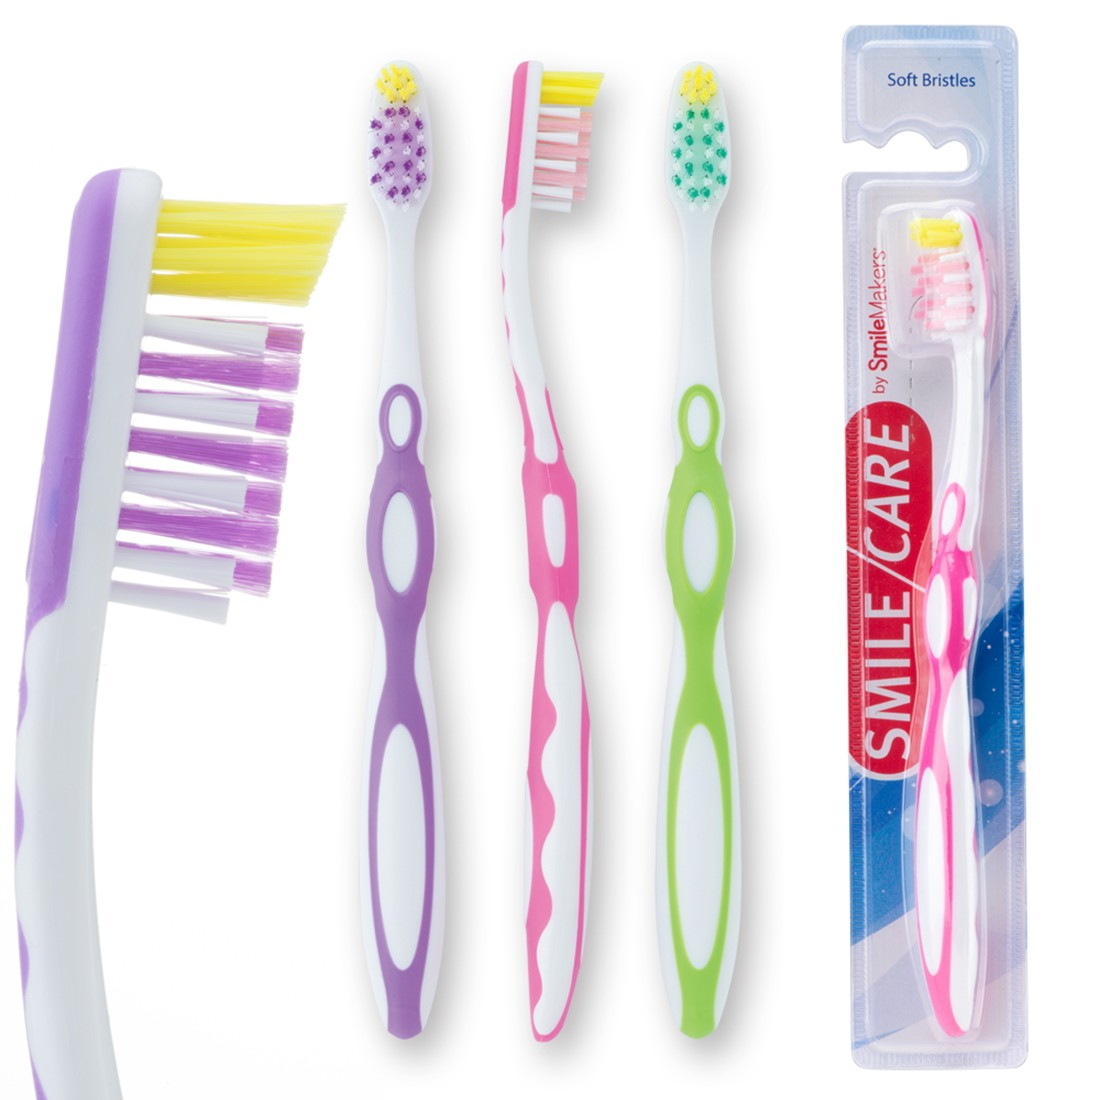 SmileCare Pre-teen Sure Tip Toothbrushes [image]